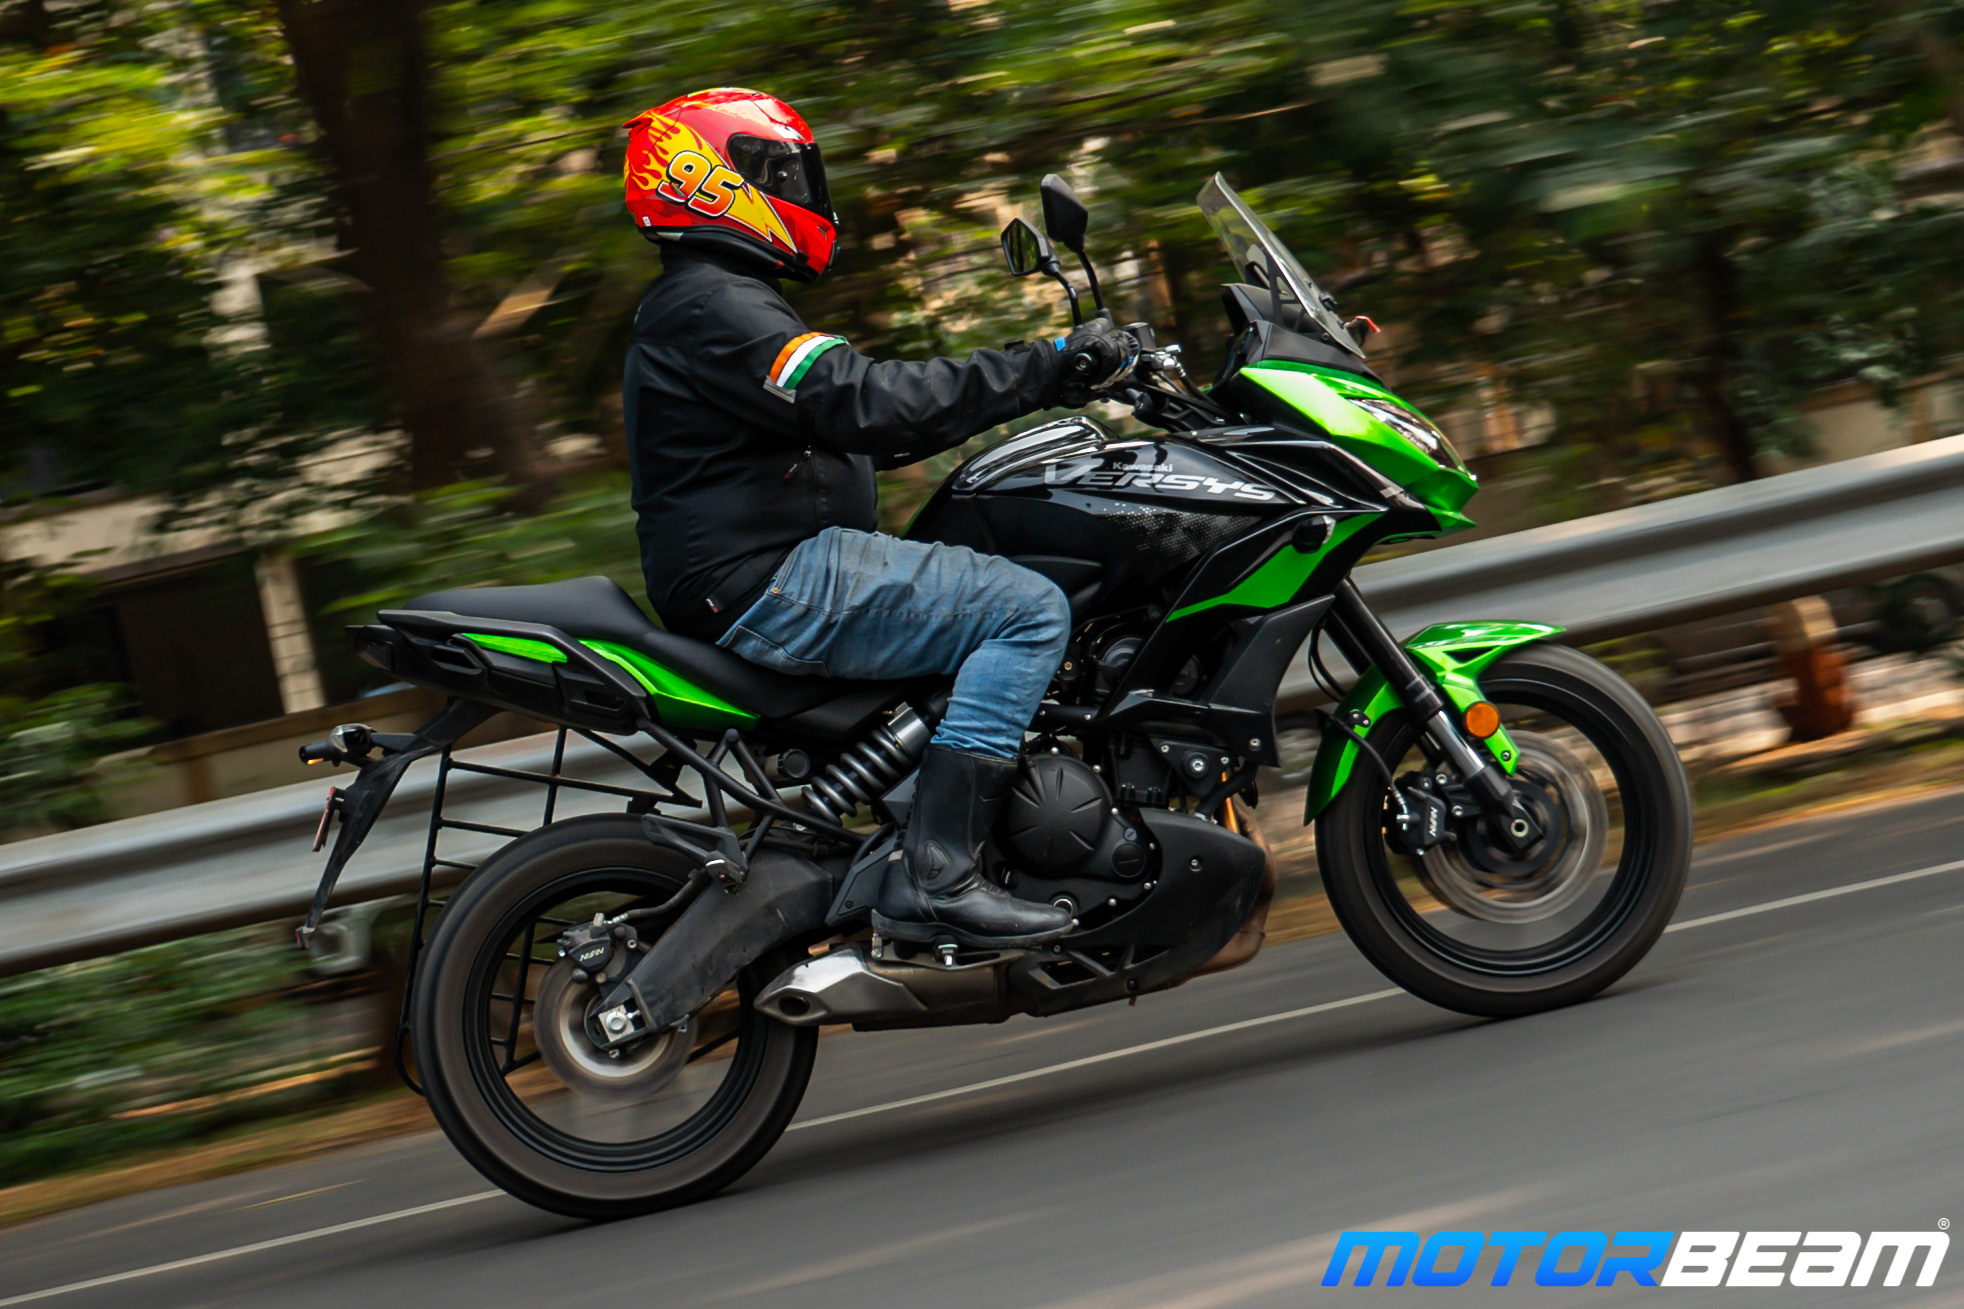 2021 Kawasaki Versys 650 Review 38